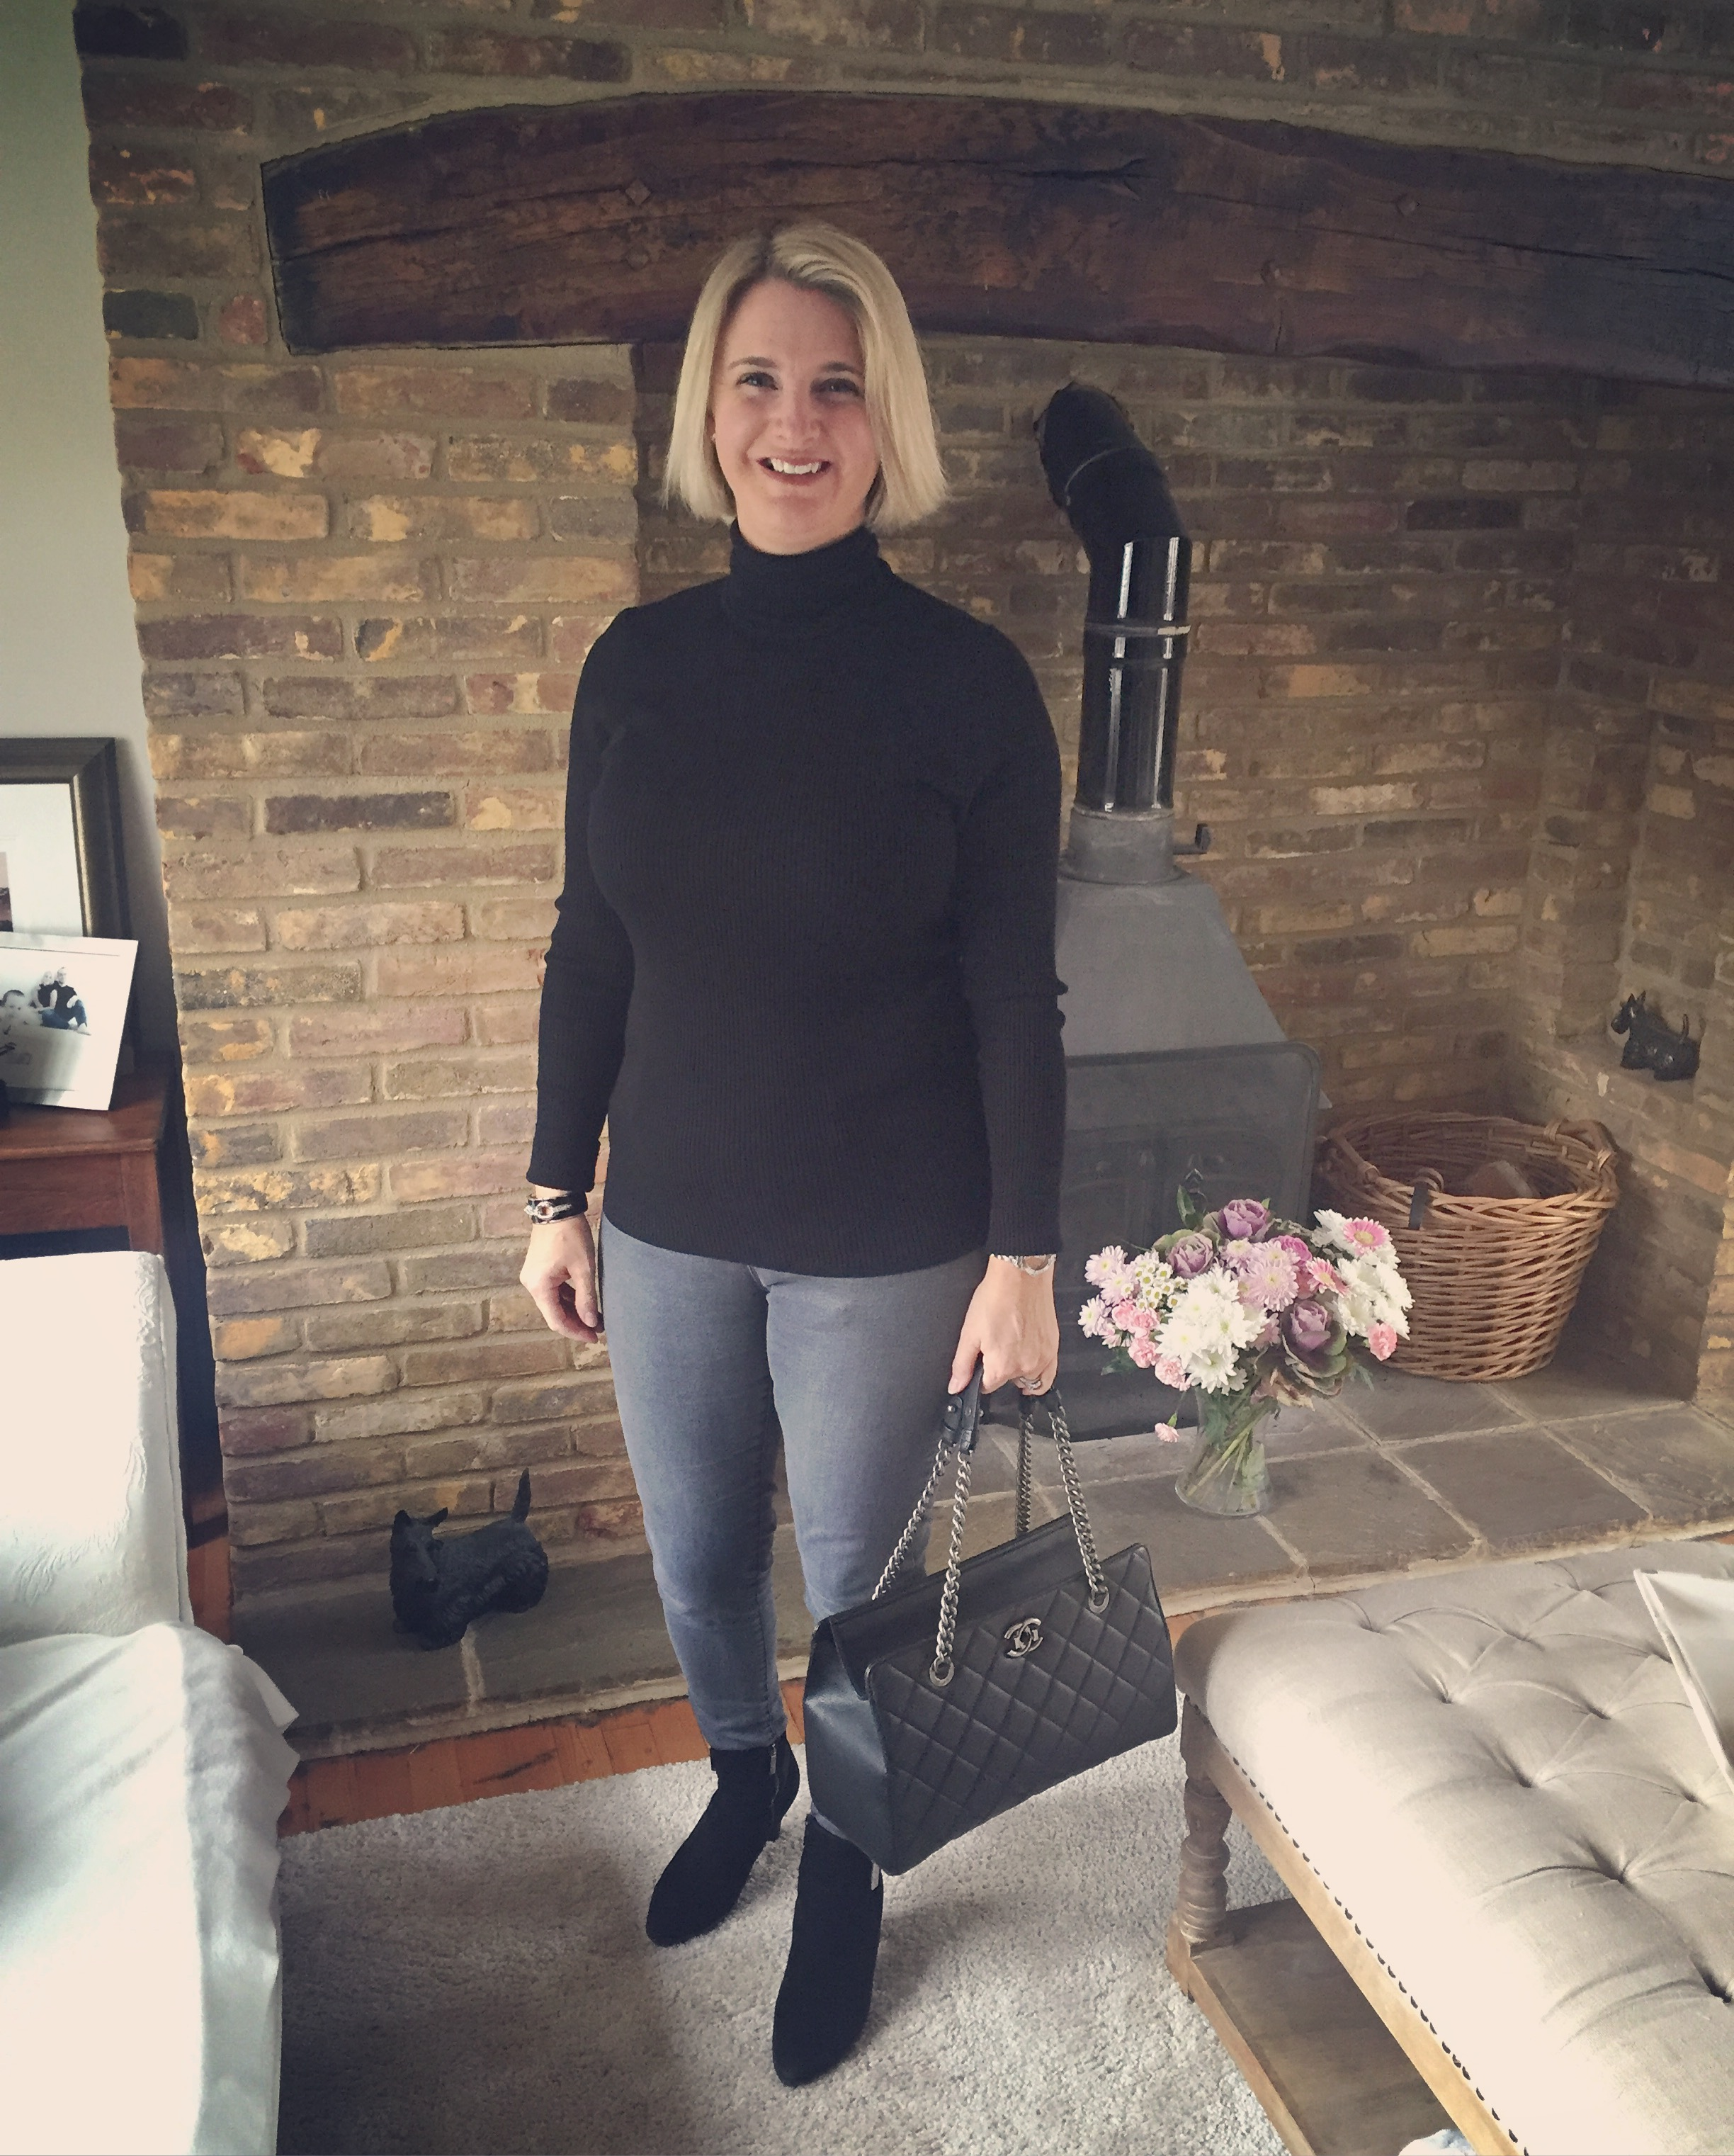 Top from Marks and Spencer, Jeggings from Dorothy Perkins, Boots from Russell and Bromley, Bag from chanel